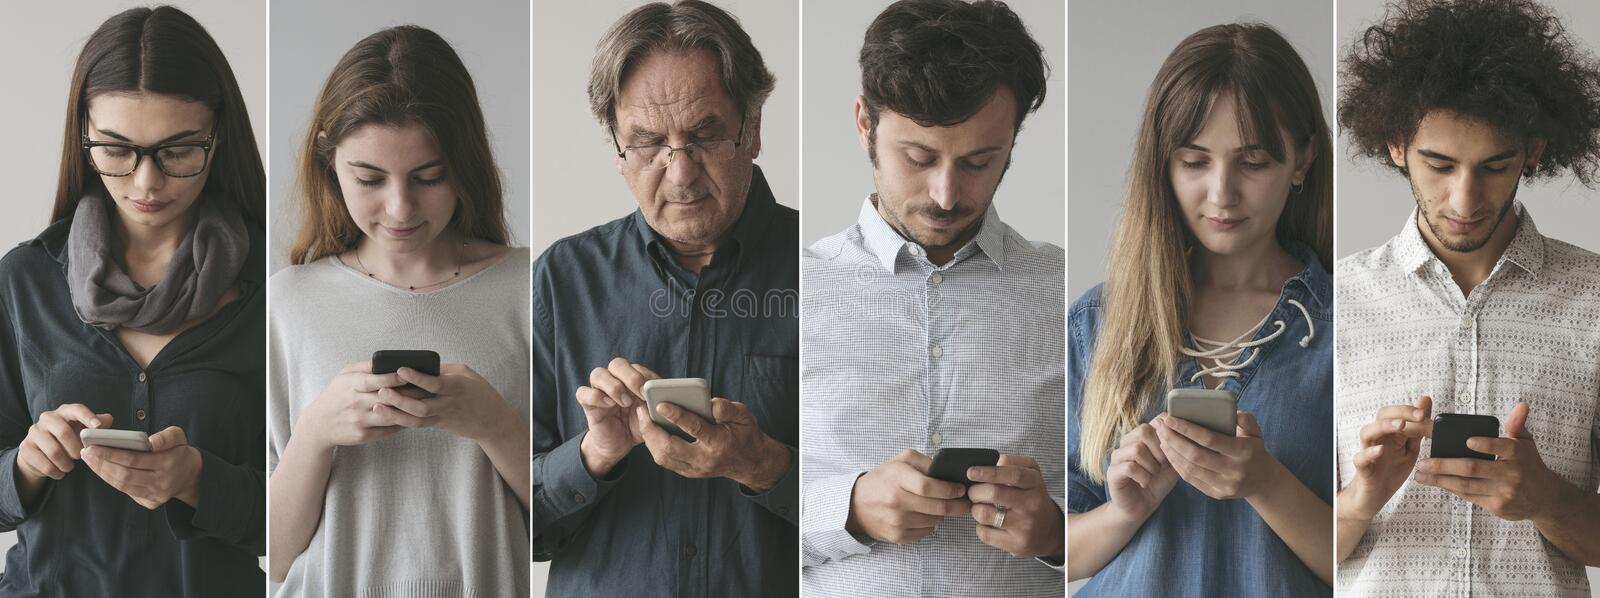 People using the mobile phone. People using the mobile  phone royalty free stock photos